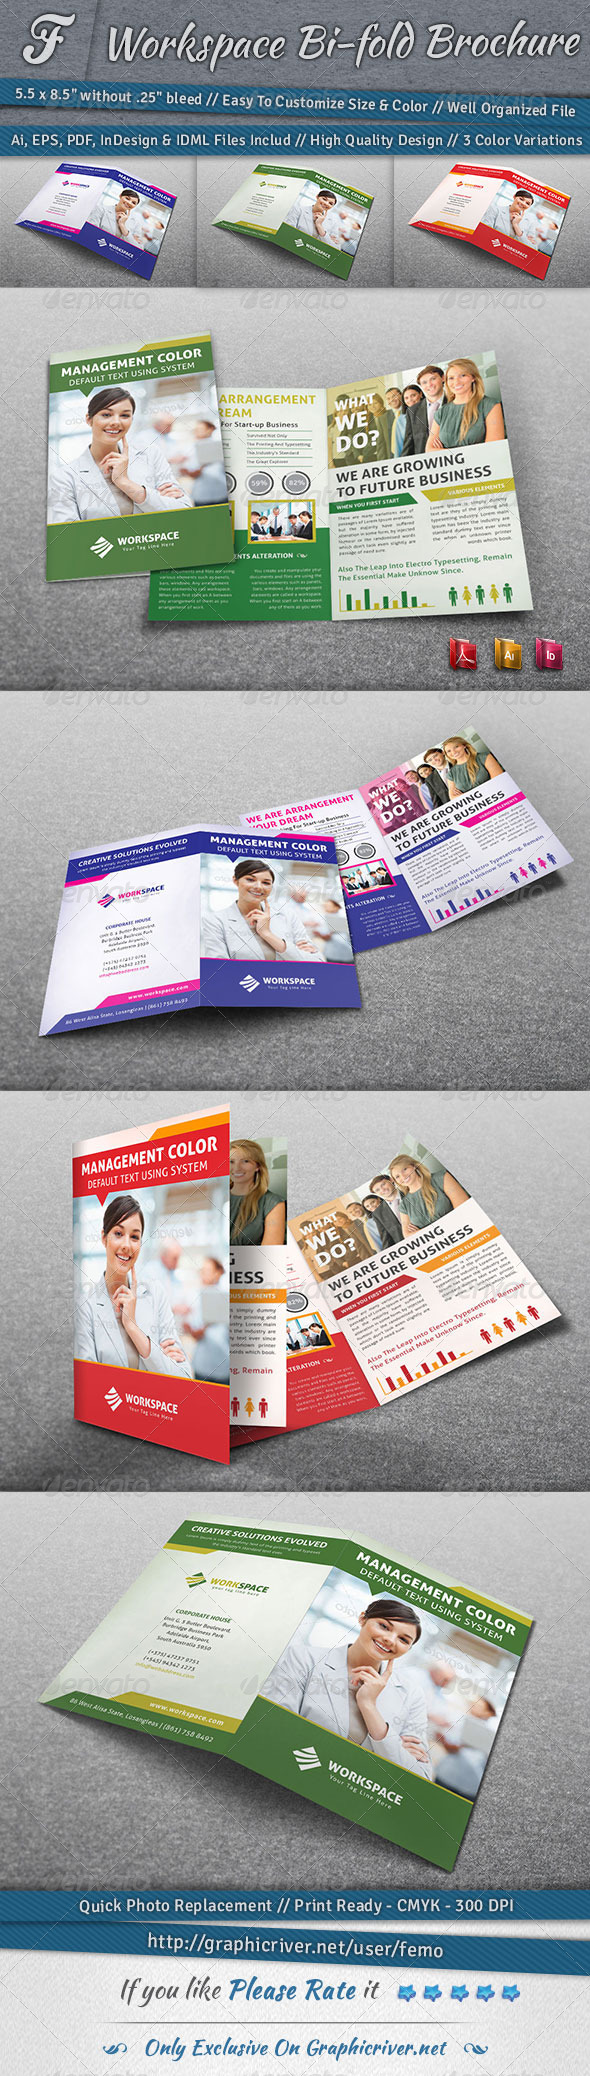 Workspace Bi-fold Brochure - Corporate Brochures